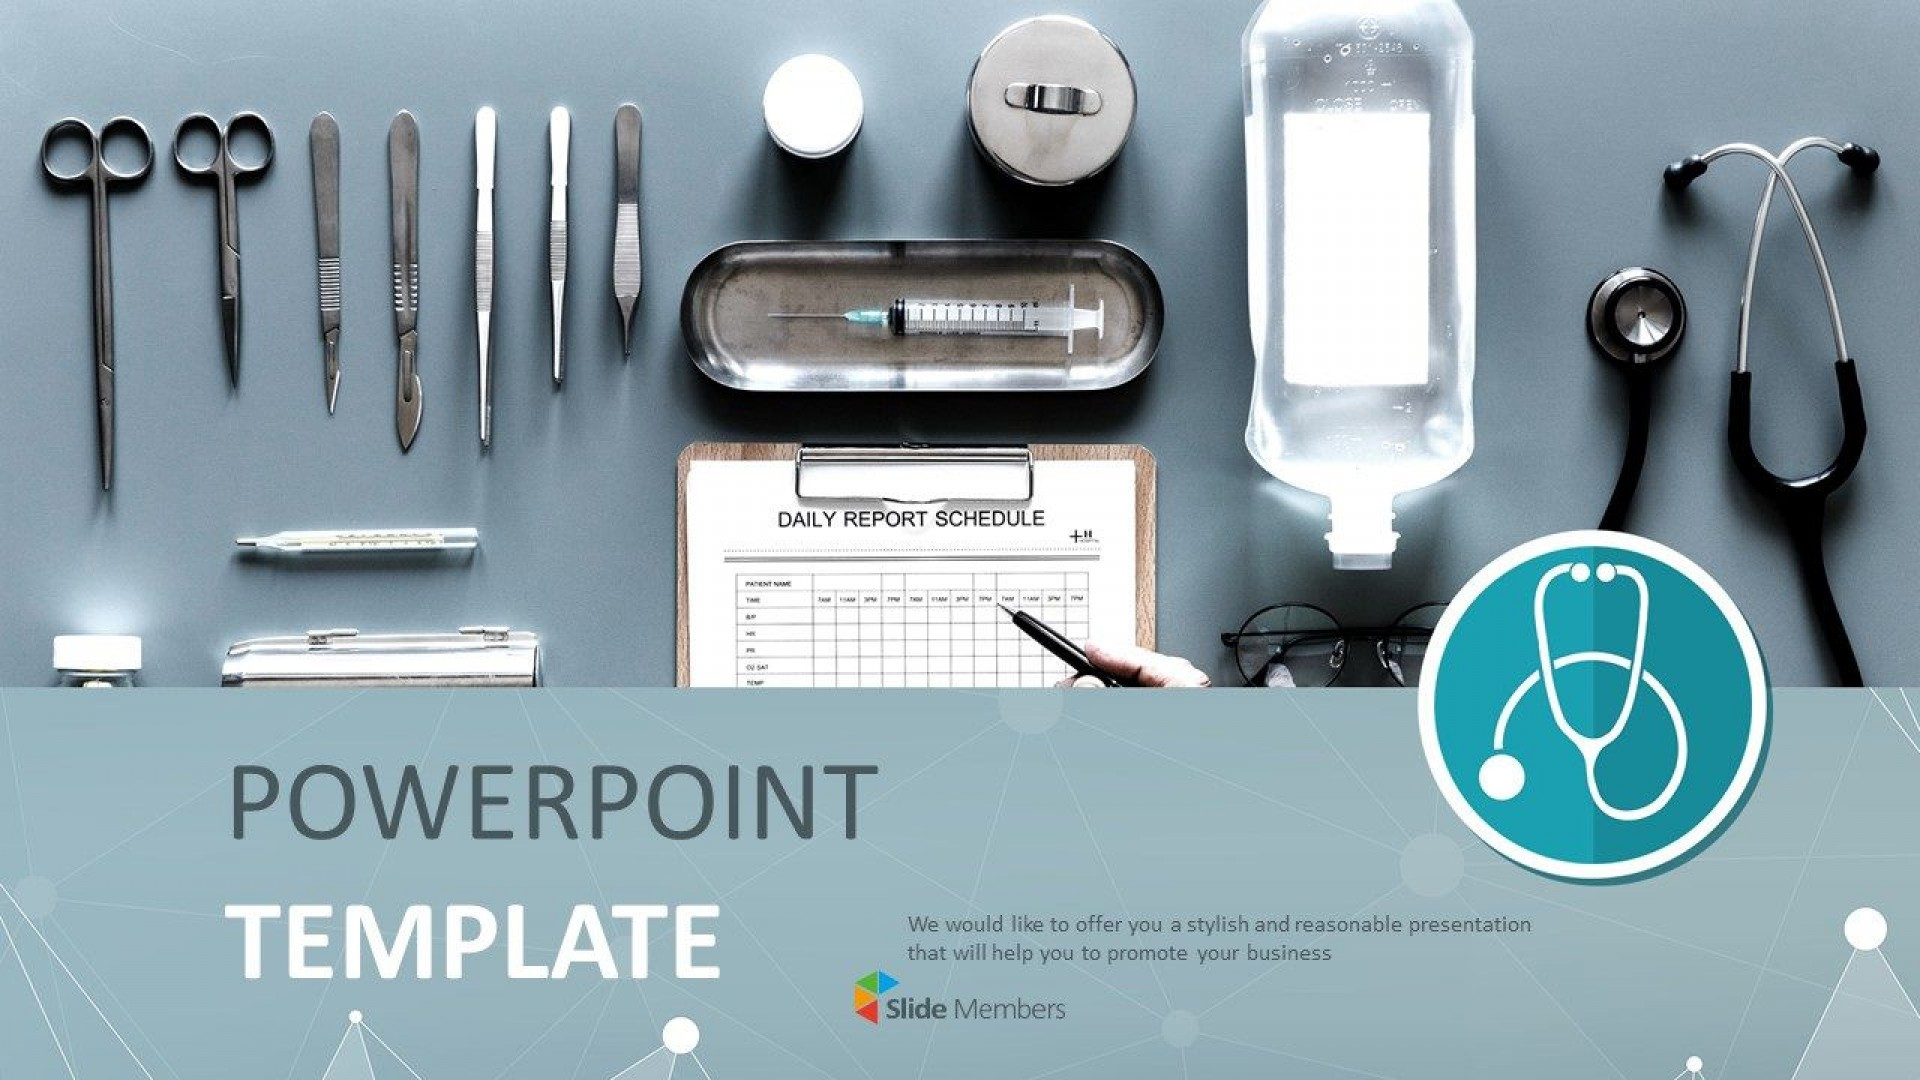 007 Shocking Powerpoint Presentation Template Free Download Medical Picture  Animated1920